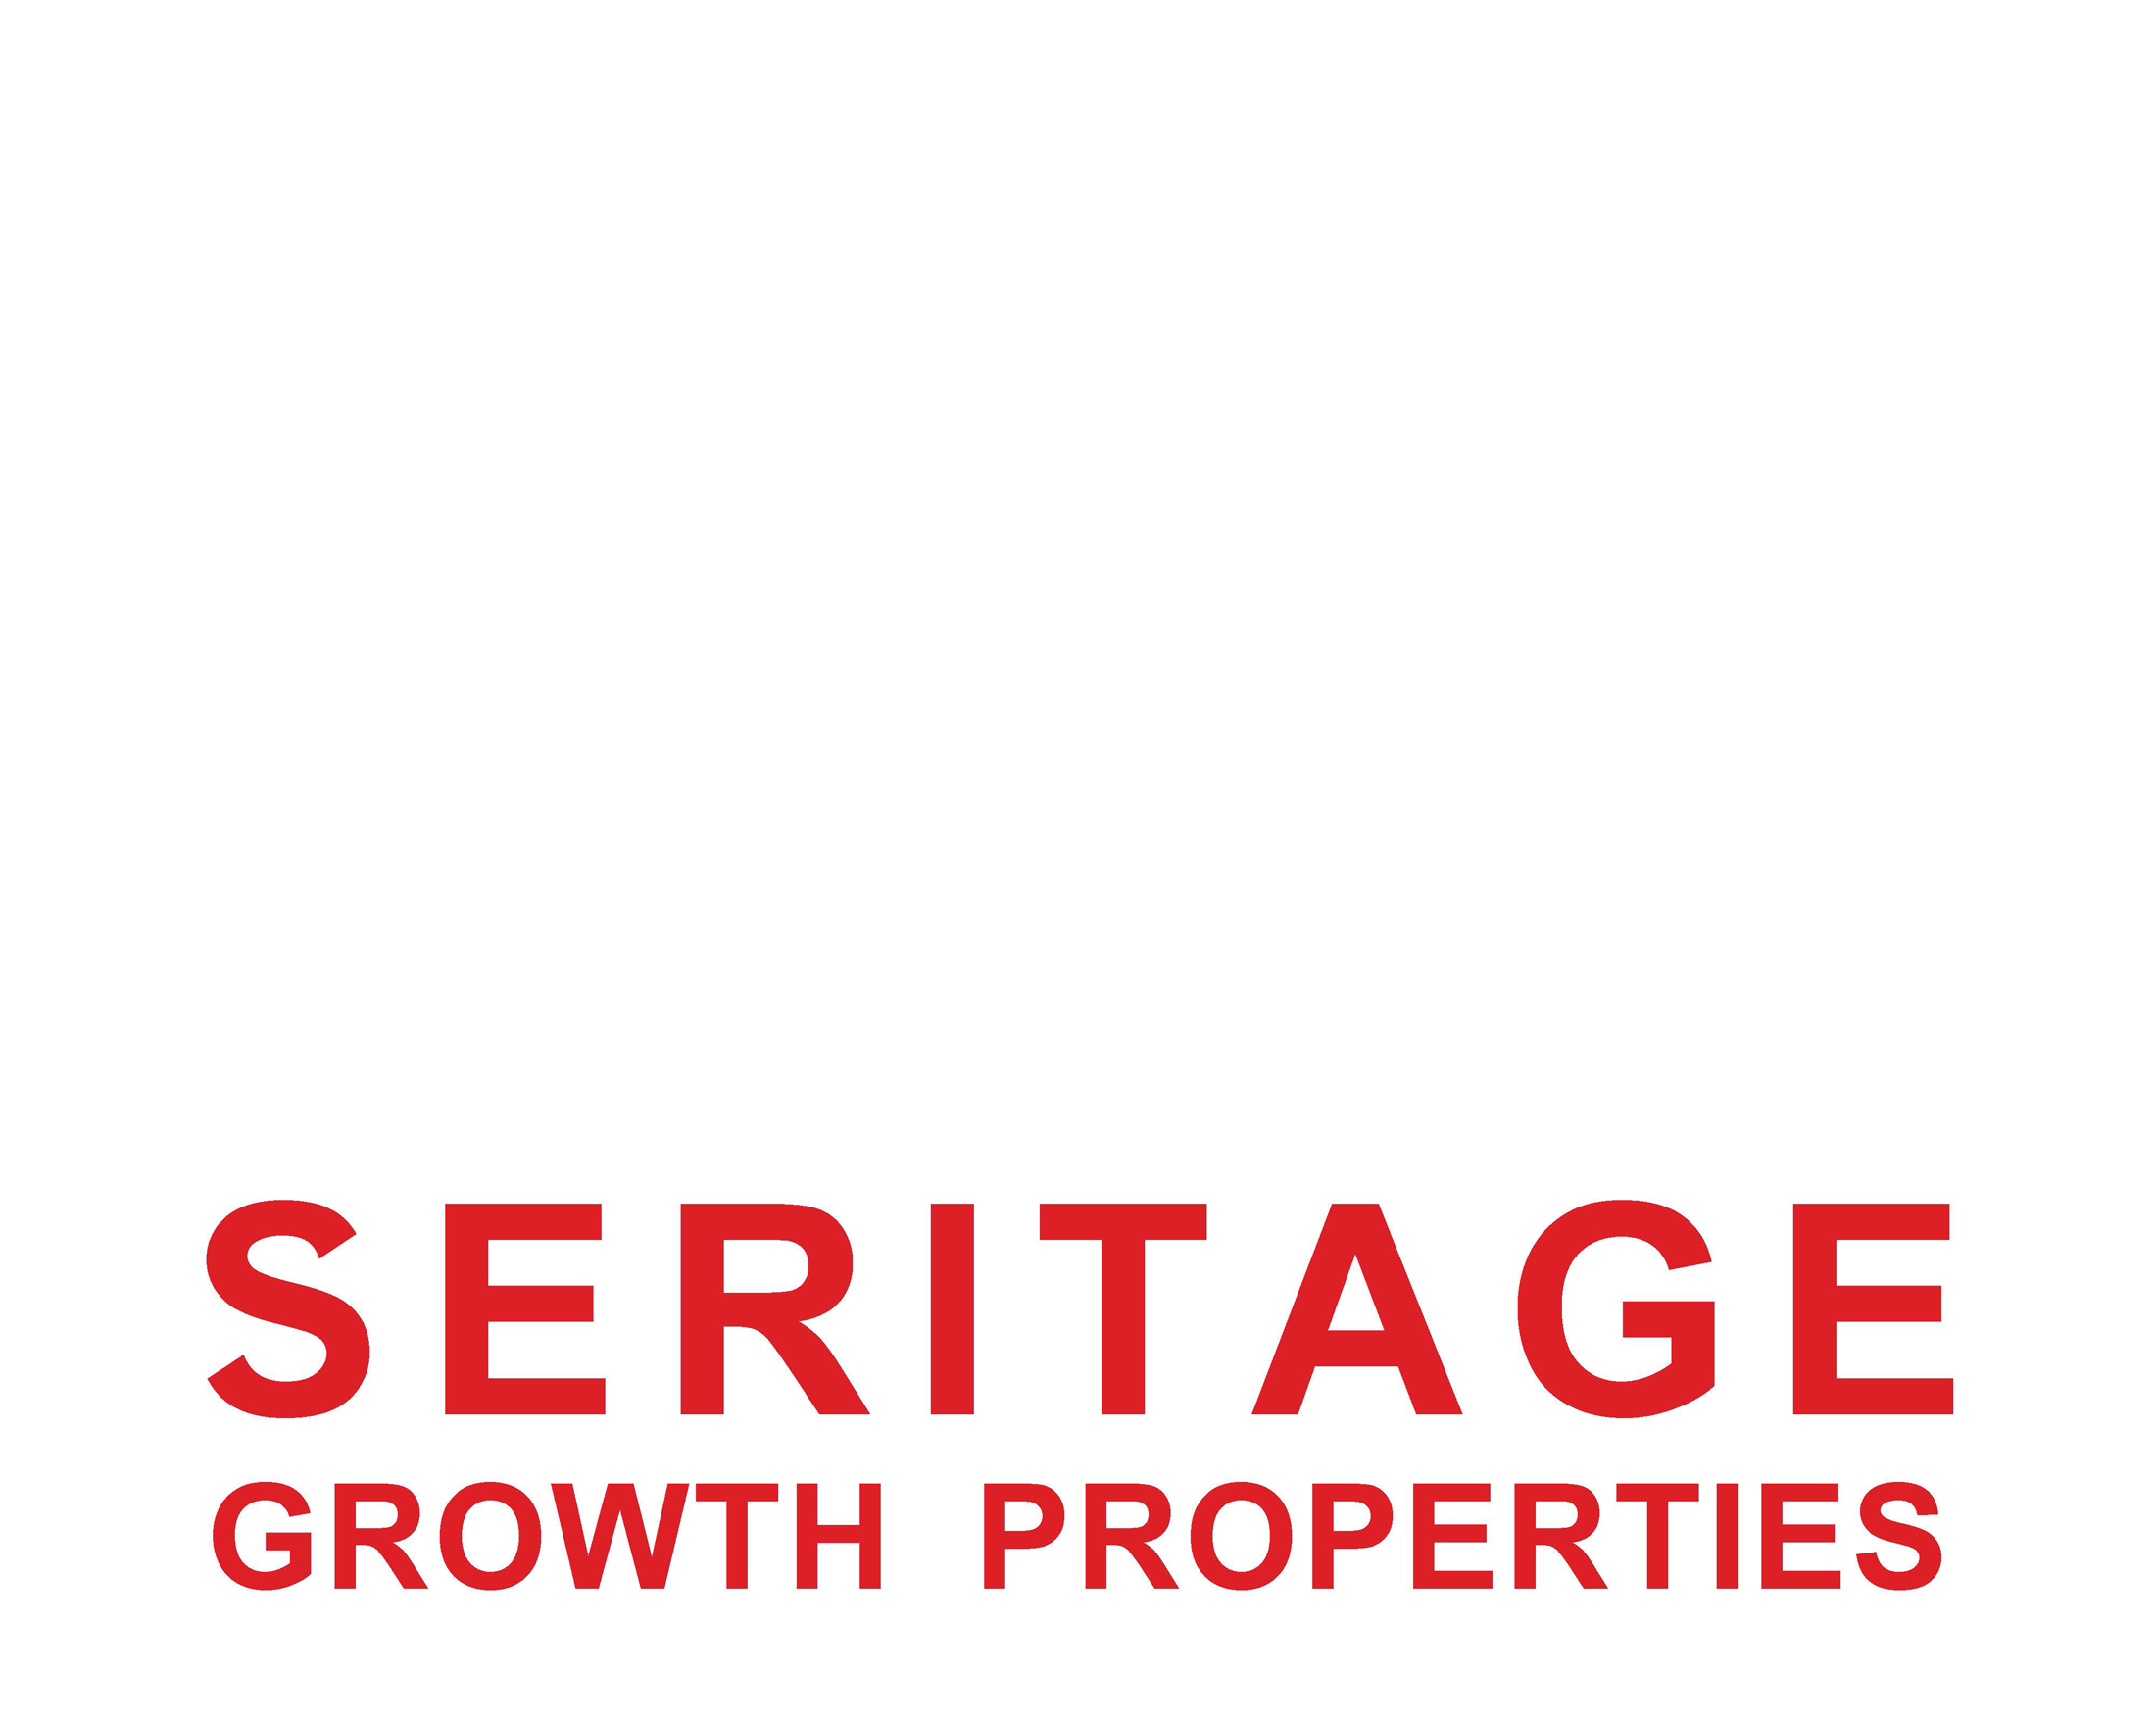 Buffett Still A Buyer, Will Seritage Shares Go Higher? - Seritage Growth Properties (NYSE:SRG)